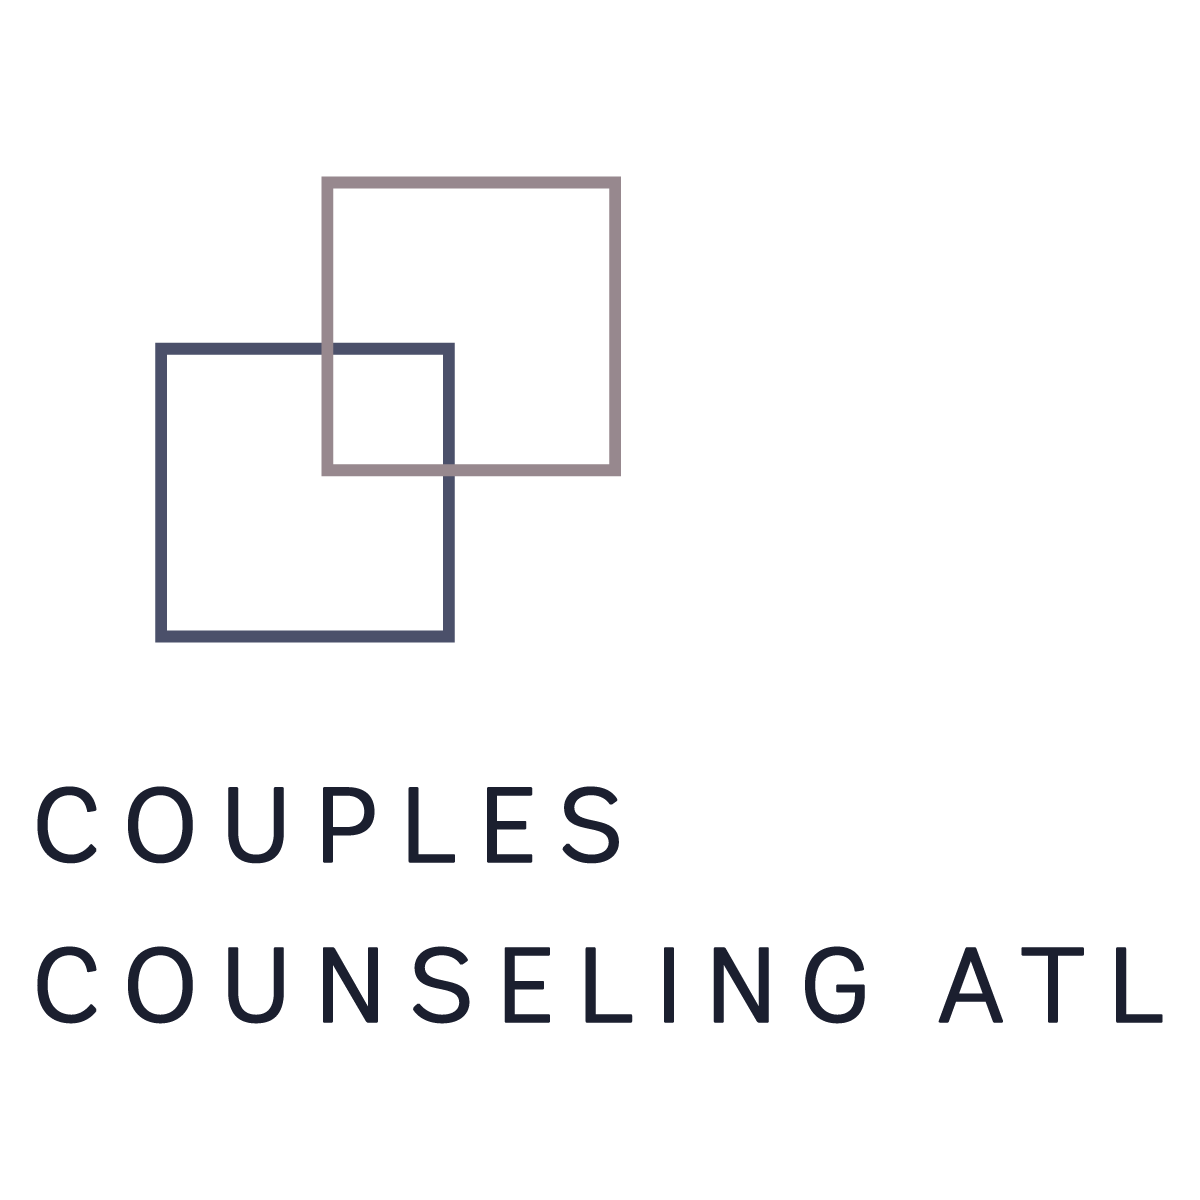 Couples Counseling ATL